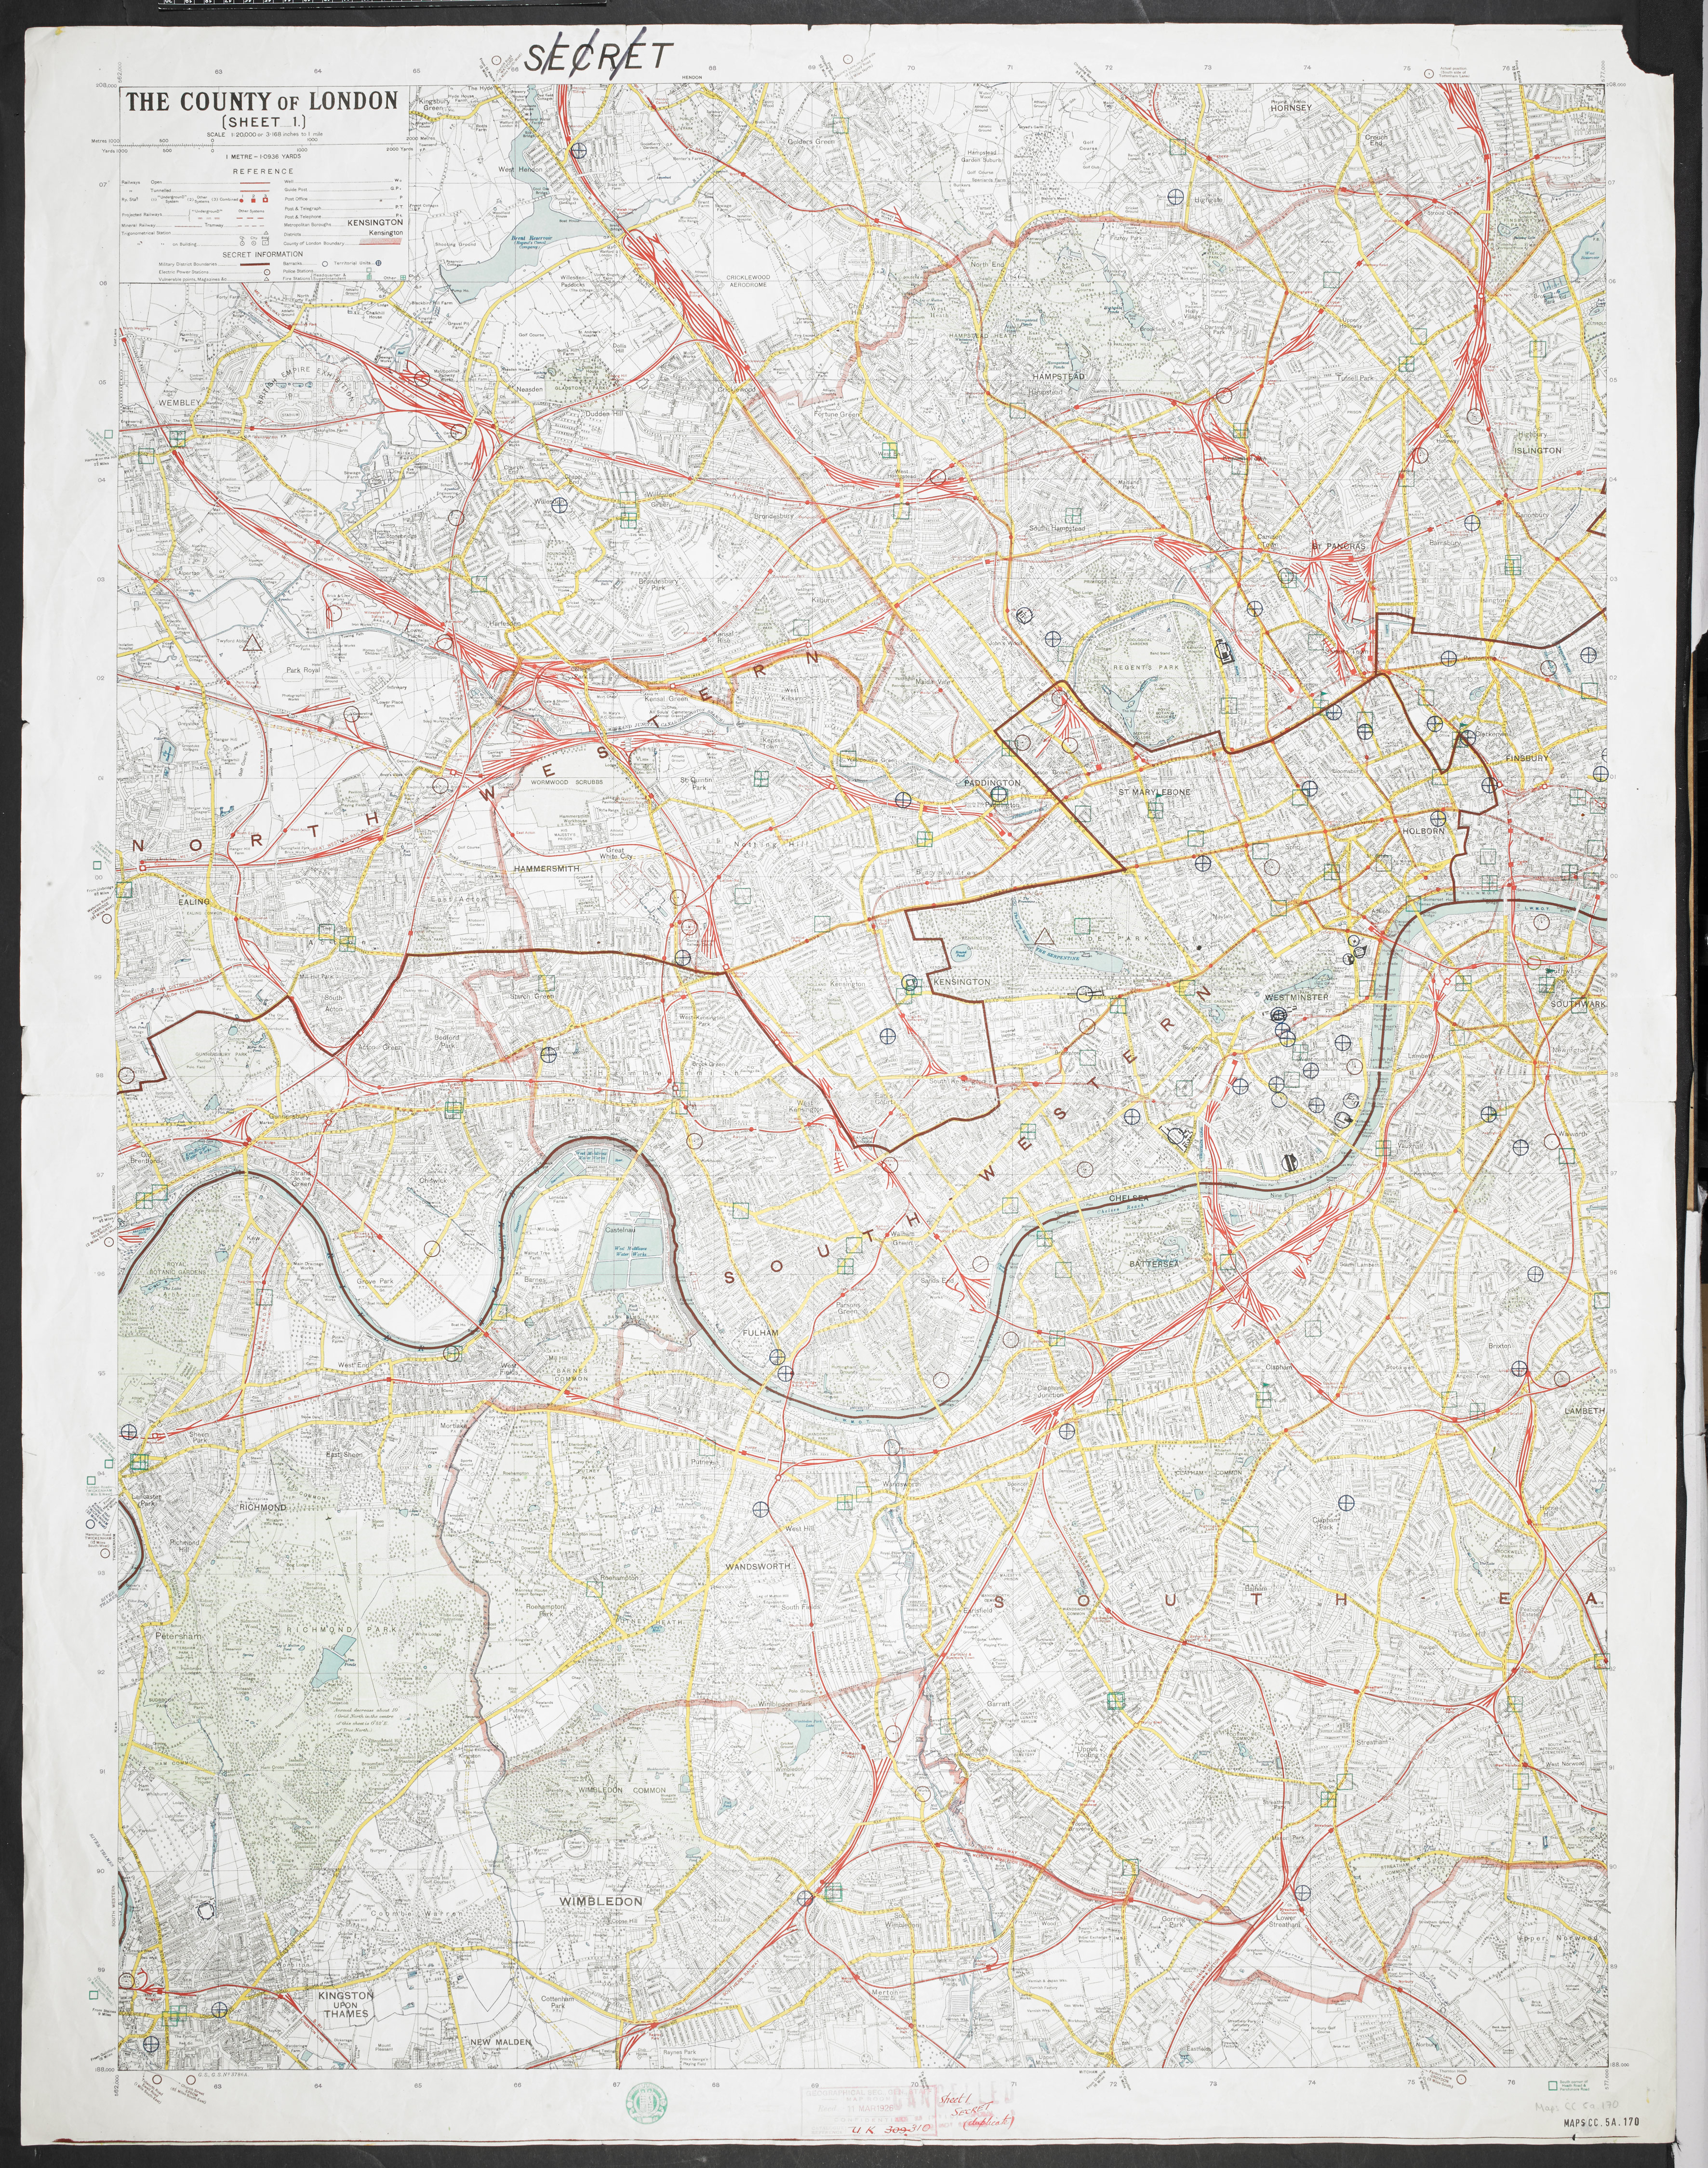 20th century London maps - The British Library